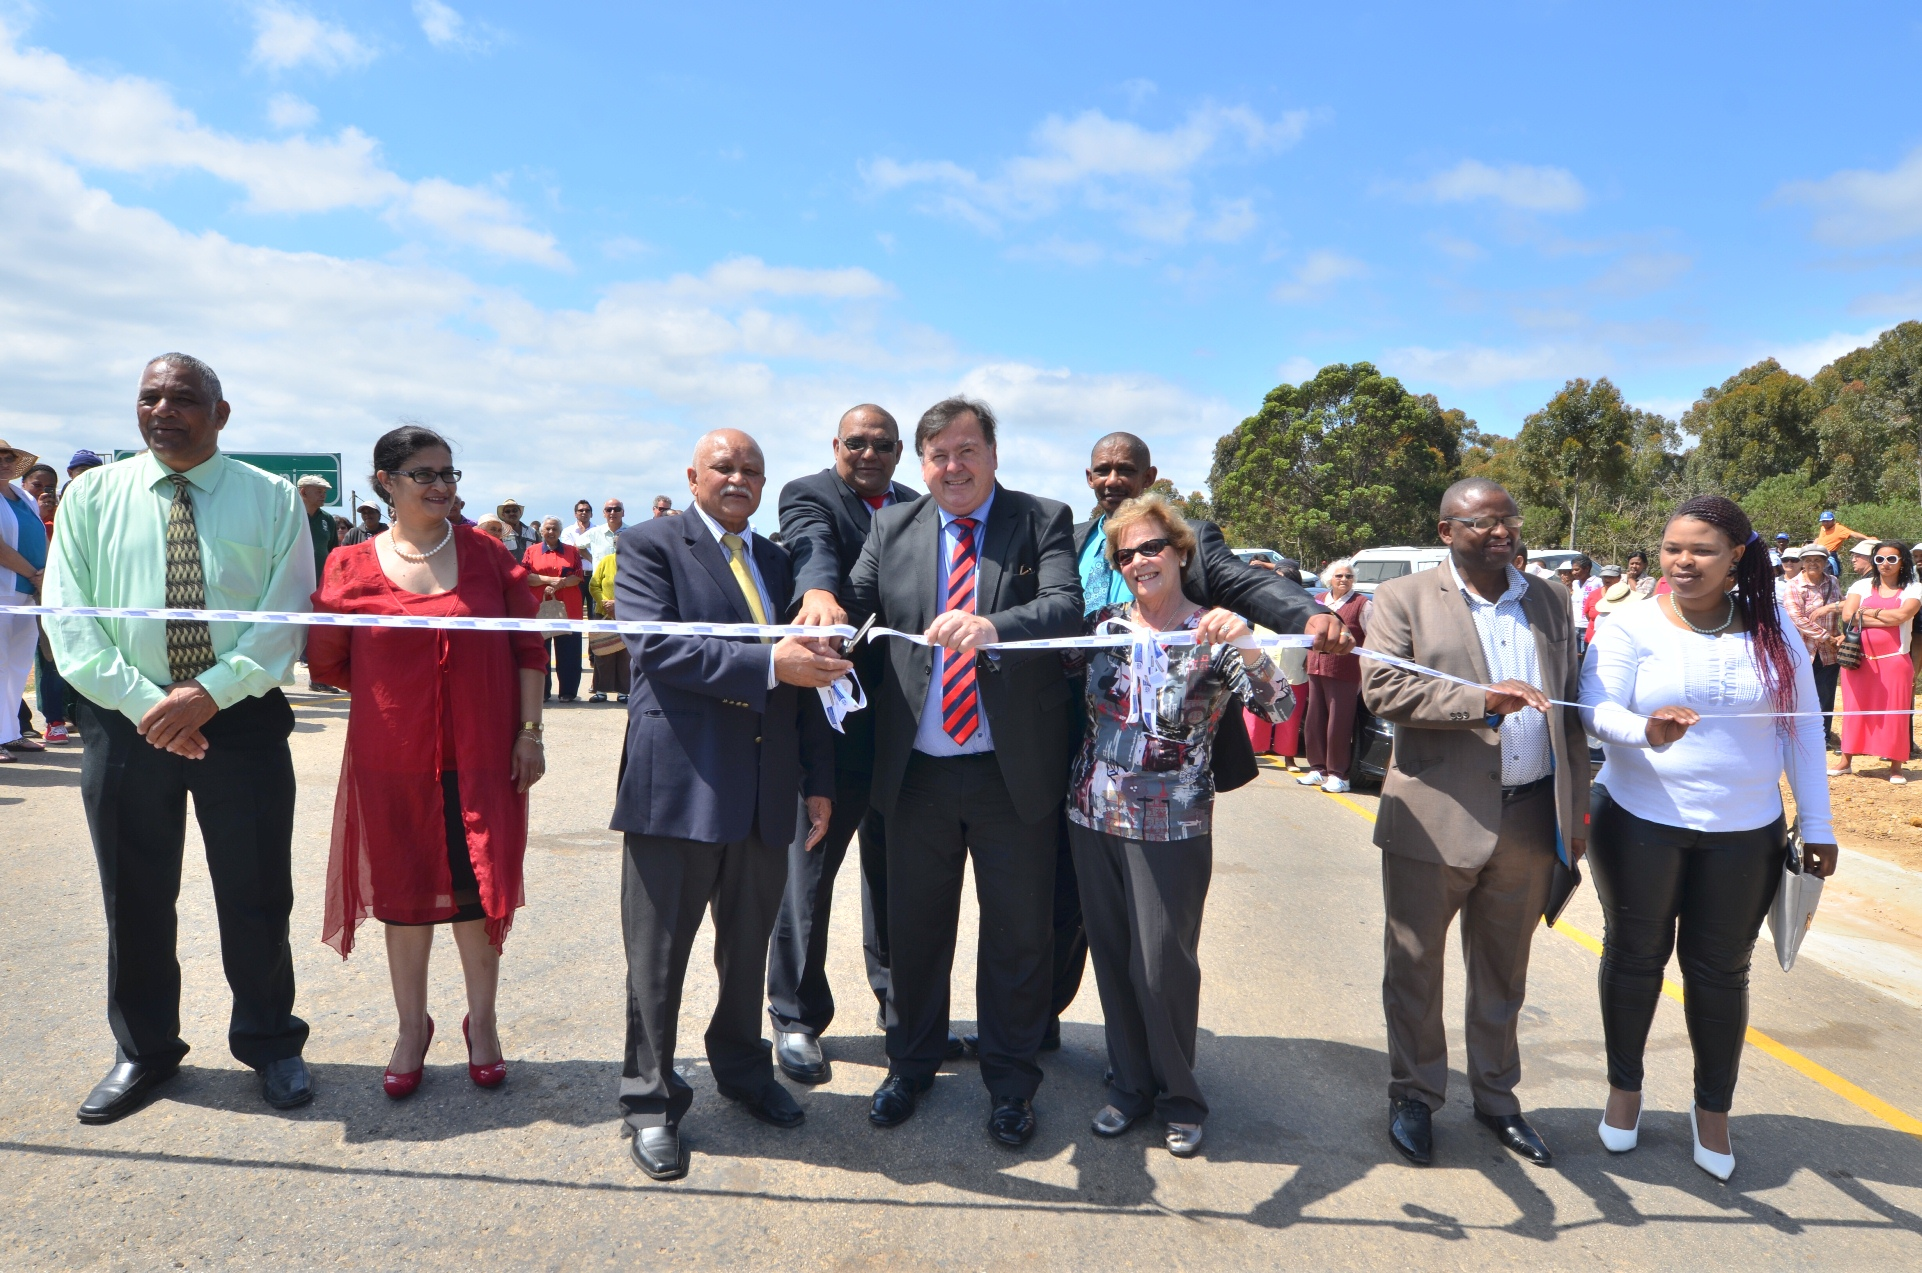 Lincoln de Bryn, Mayor of the Overberg District Municipality, Reverend D Dietrich, Minister Grant, and Nicolette Botha-Guthrie, Mayor of the Overstrand Local Municipality, flanked by municipal officials and guests.